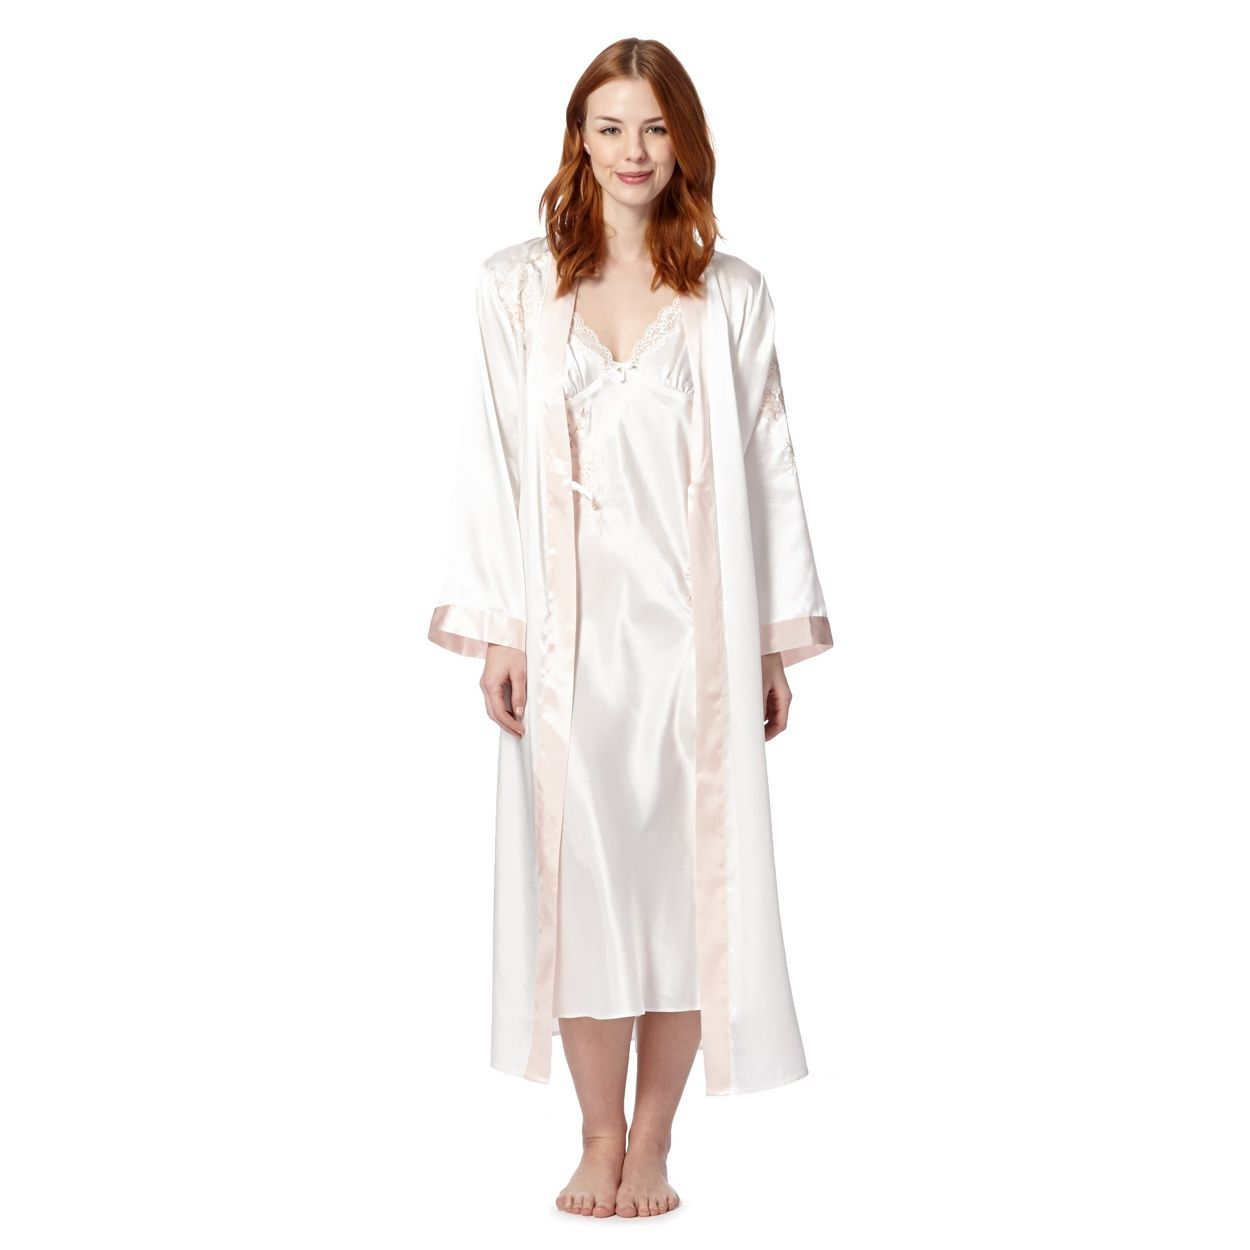 39abed9c36 This long dressing gown from Presence comes in ivory satin with pale pink  trims and lovely embroidery to one shoulder and sleeve. I have always  wanted a ...